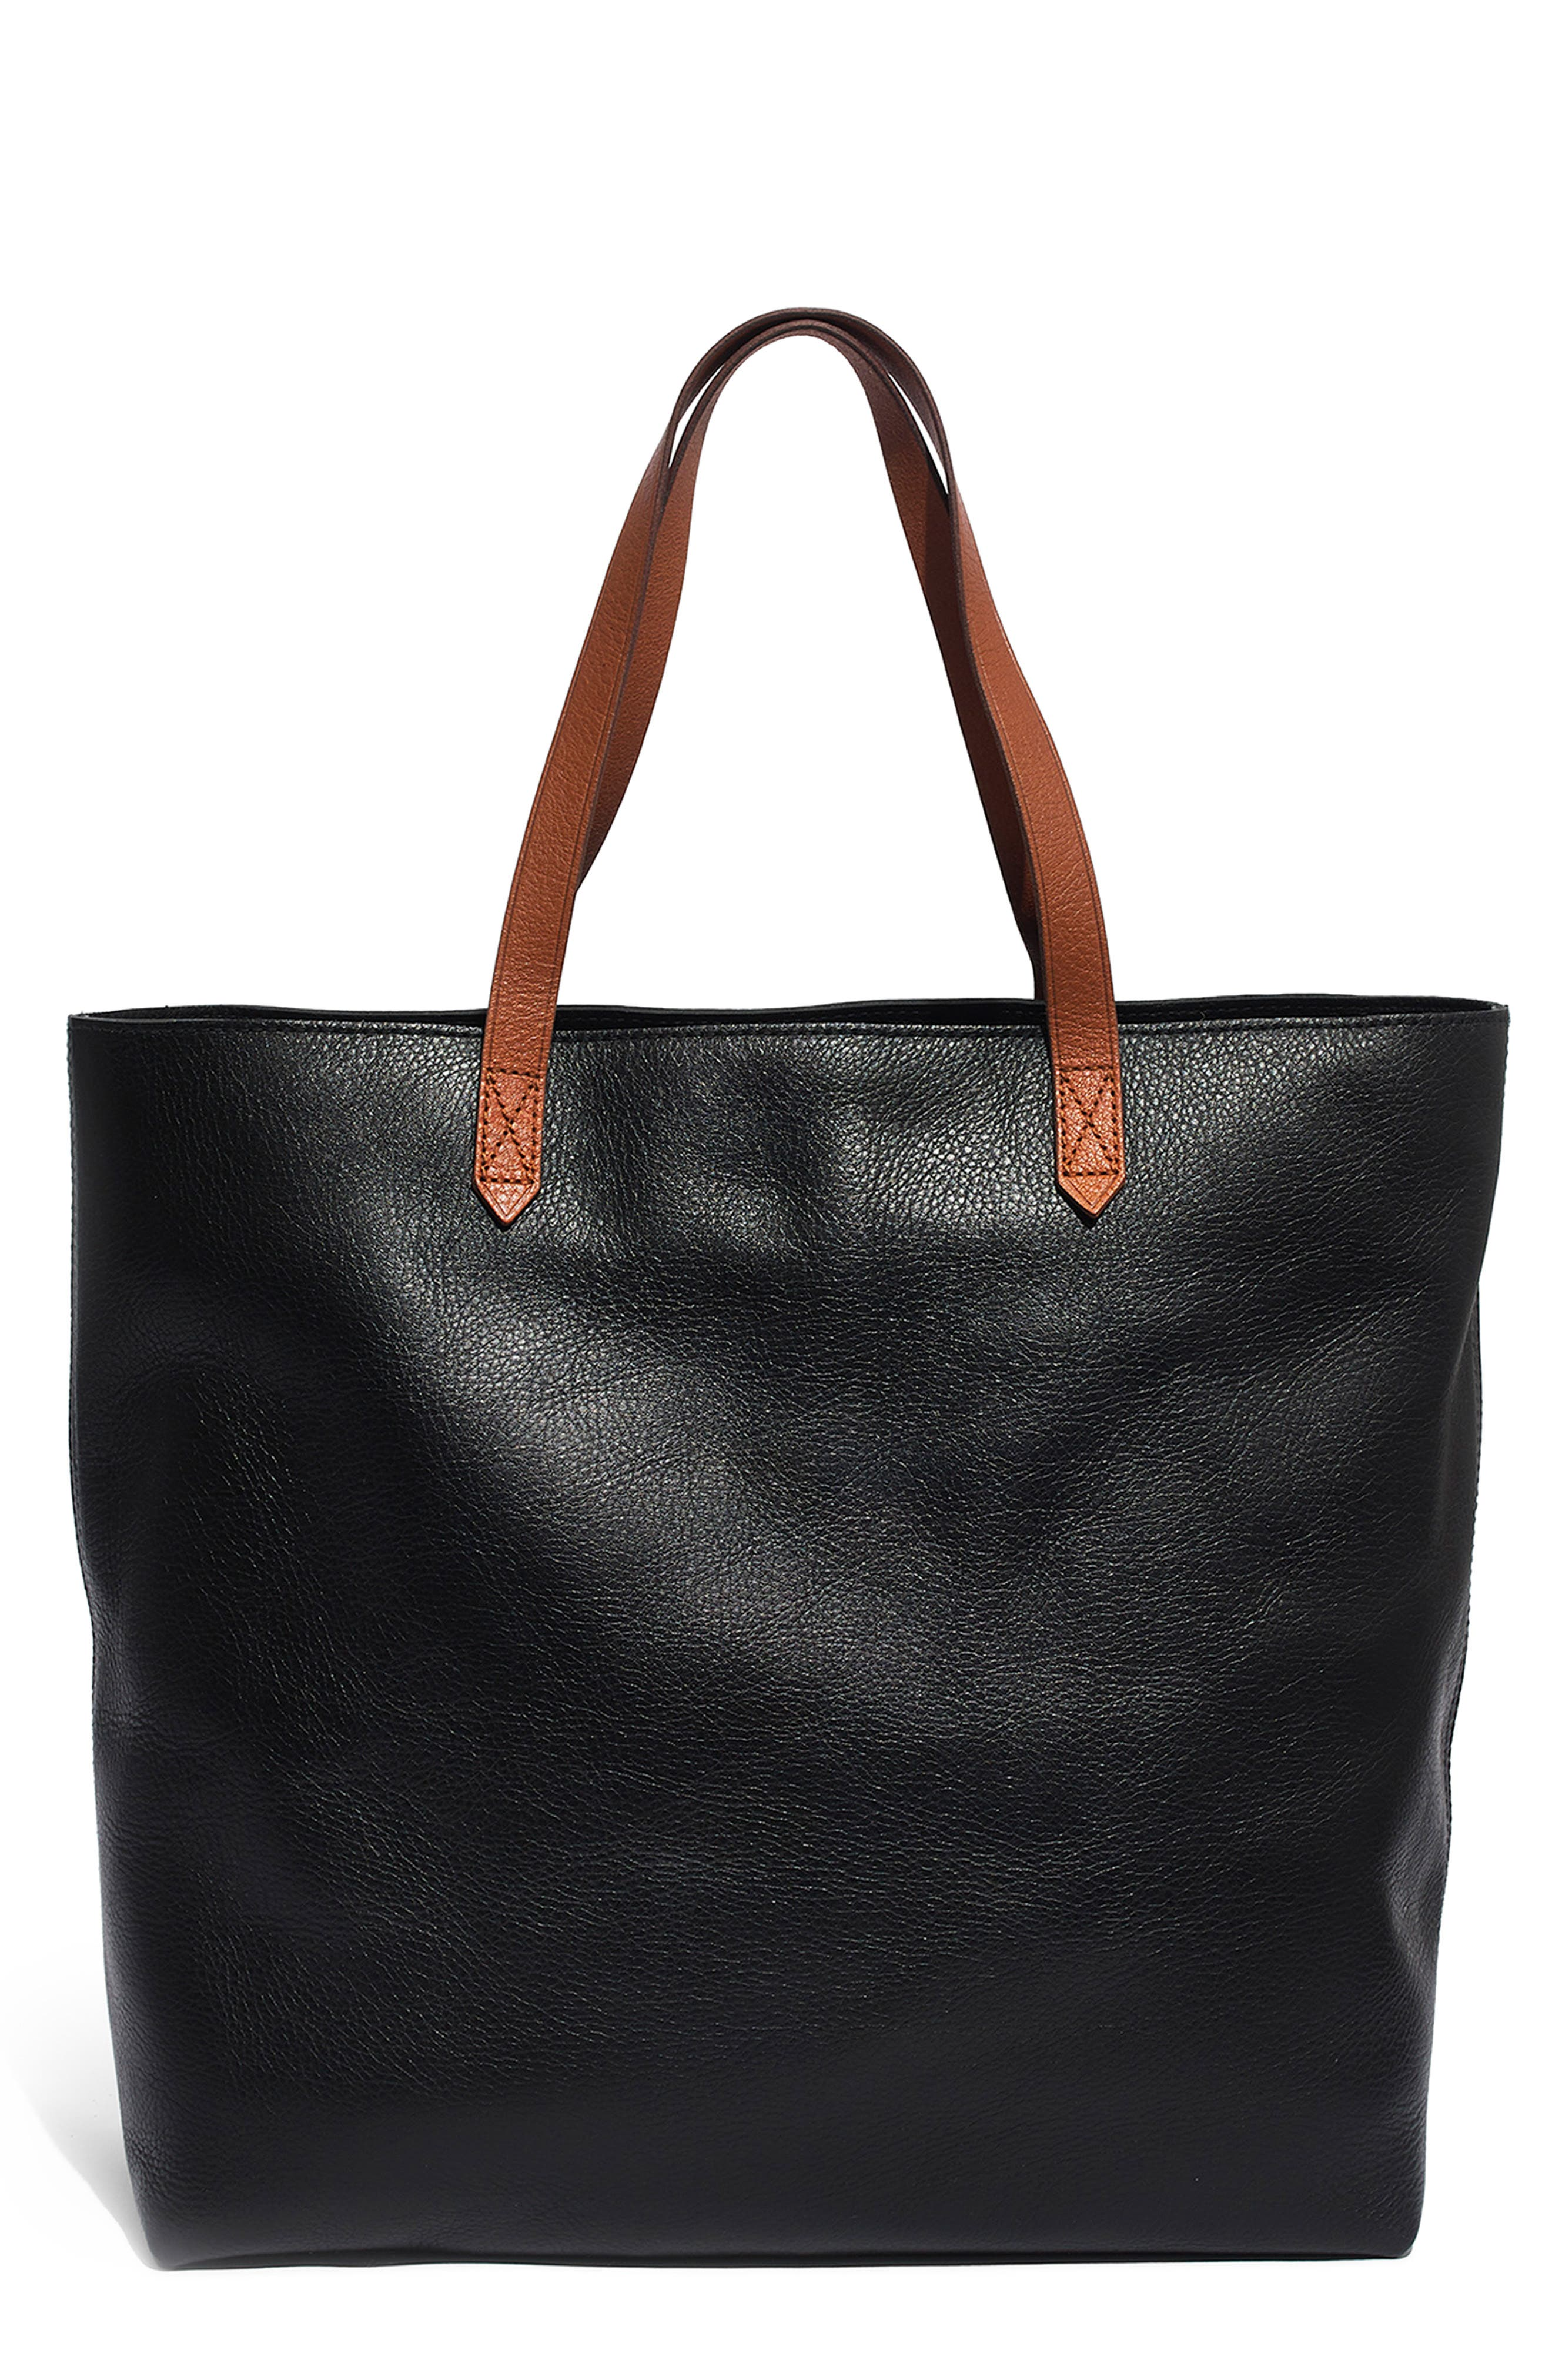 MADEWELL, Zip Top Transport Leather Tote, Main thumbnail 1, color, TRUE BLACK W/ BROWN